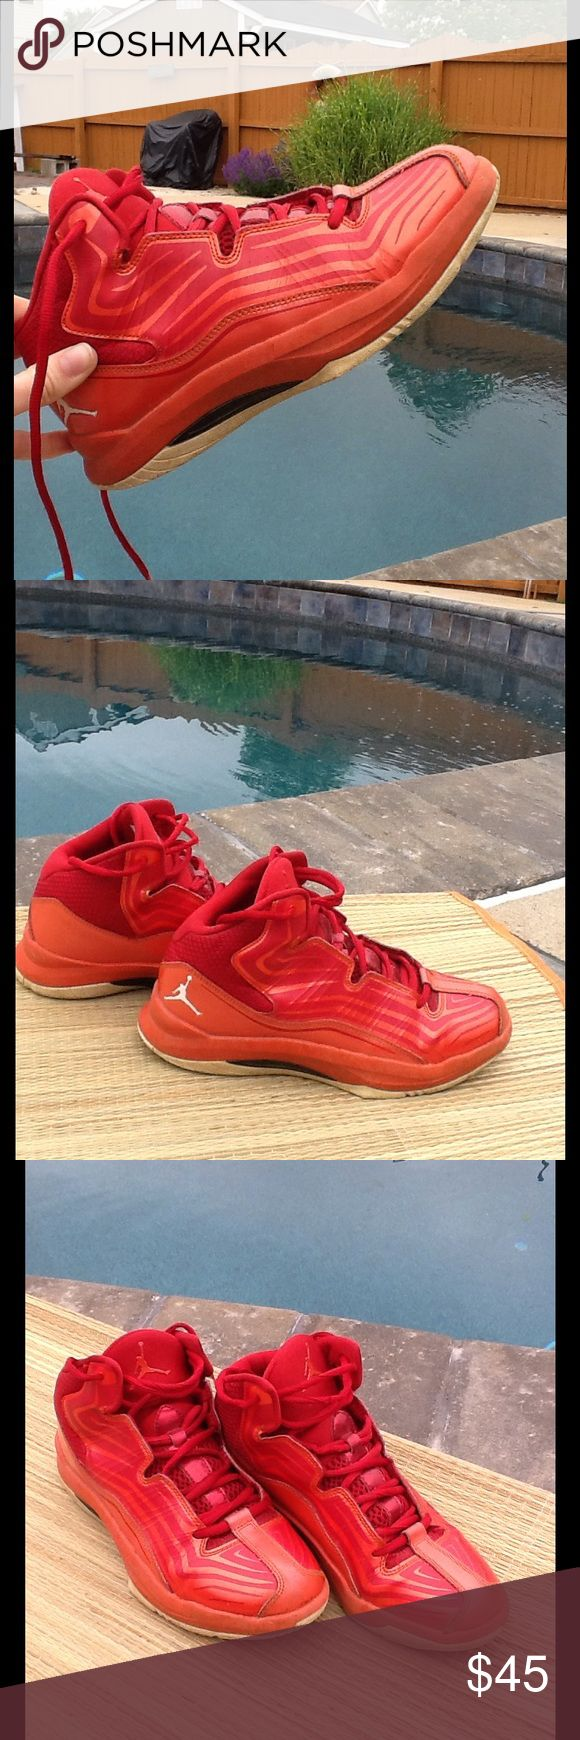 RED YOUTH JORDANS ON SALE!! Good condition, no stains or scuffs! Make an offer!!🎊 Jordan Shoes Sneakers